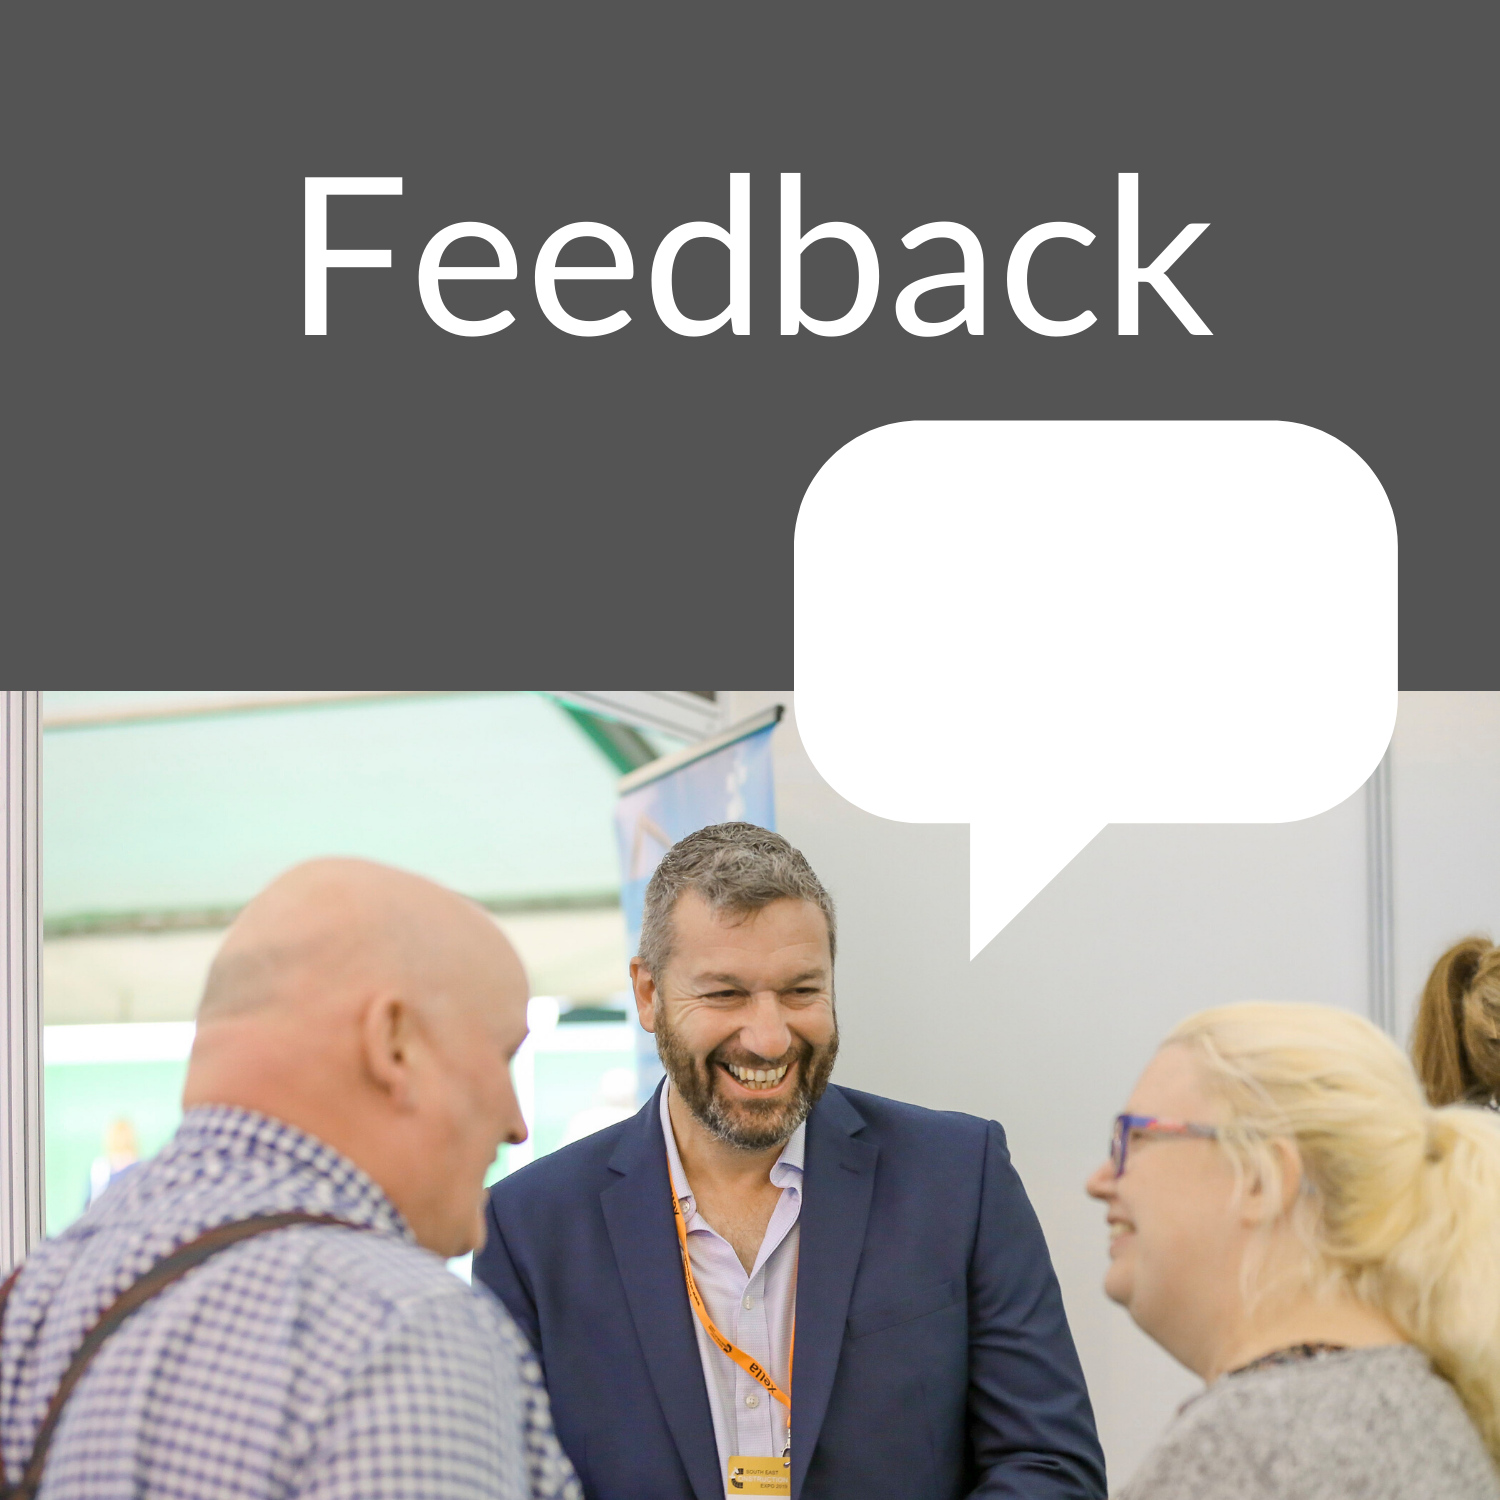 South East Construction Expo Feedback